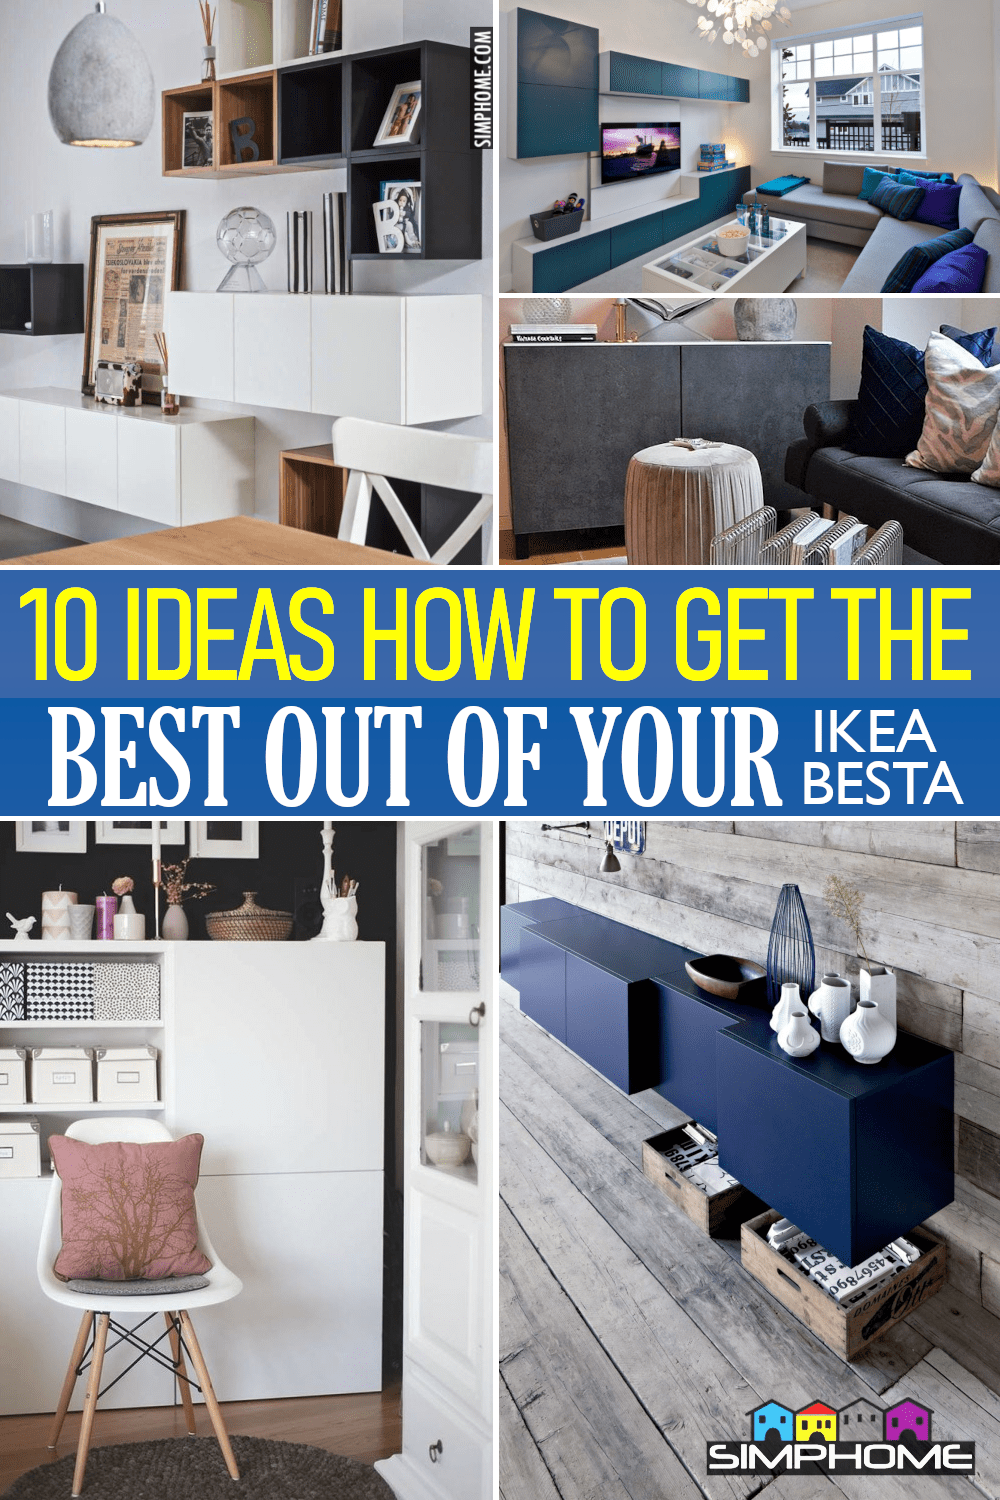 10 Ideas How to Get the Best out of IKEA BESTA Unit via Simphome.comFeatured